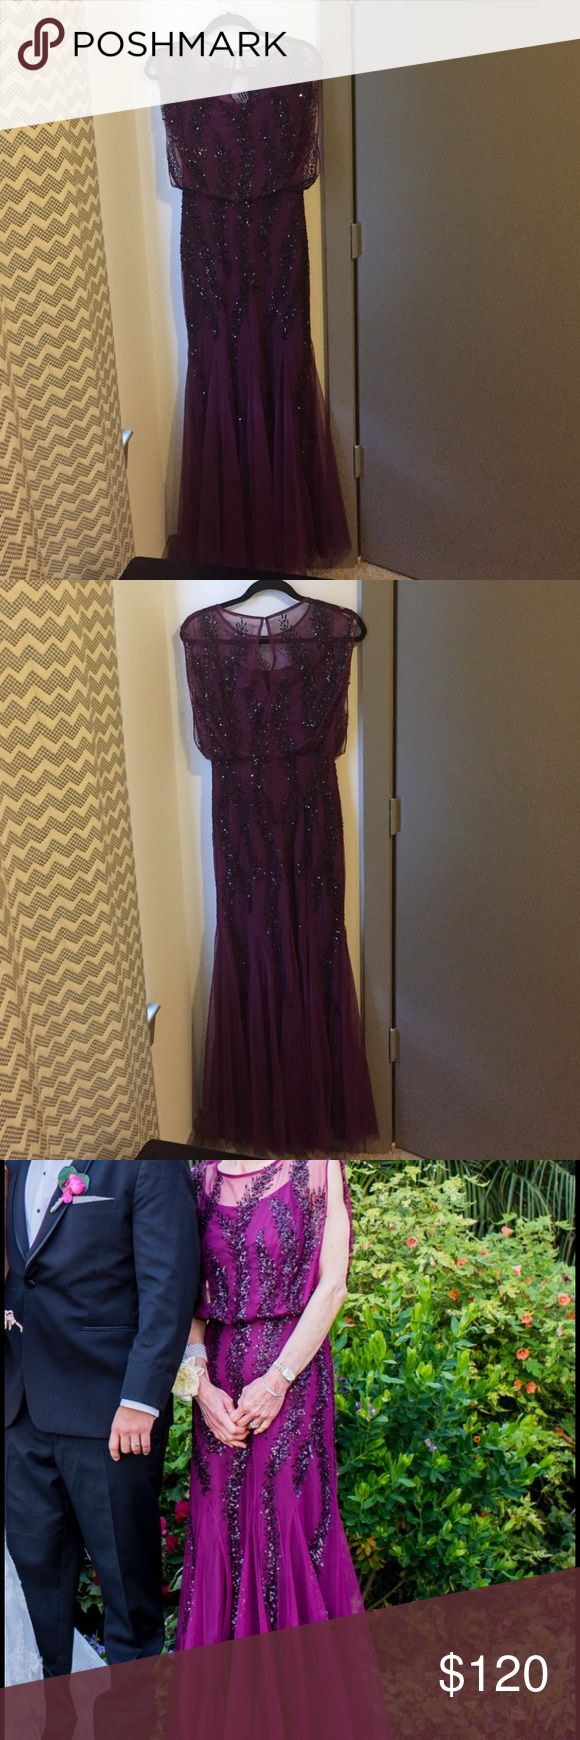 Aidan Mattox beaded blouson dress Only worn once! Can fit size 0 too. Approx. 53 inches long Aidan Mattox Dresses Prom